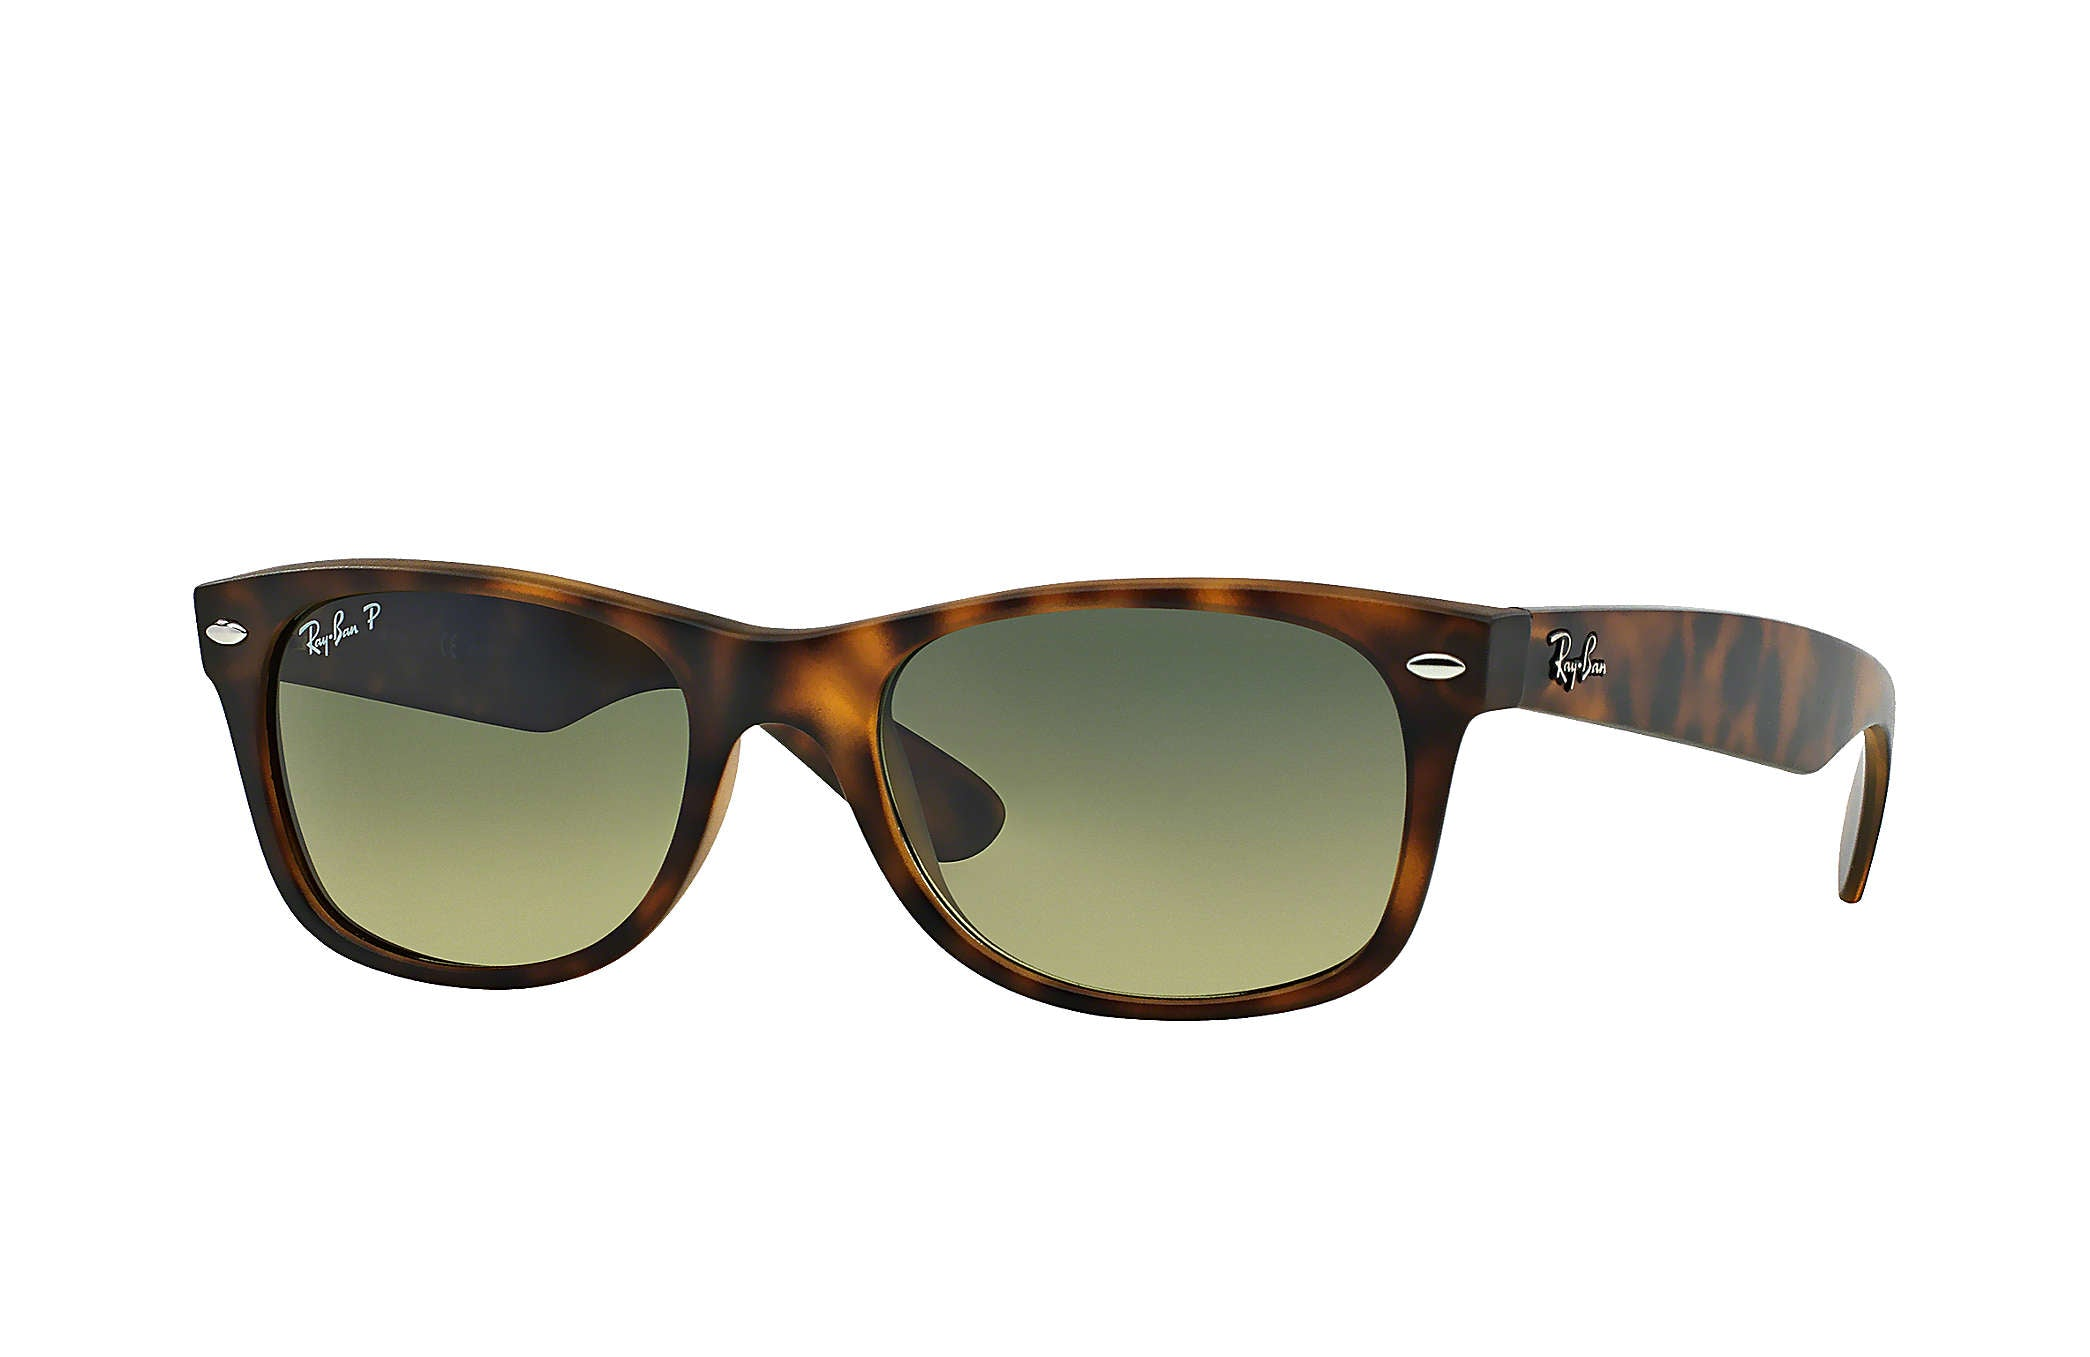 NEW WAYFARER SUNGLASSES MATTE HAVANA TORTOISE - BLUE/GREEN GRADIENT